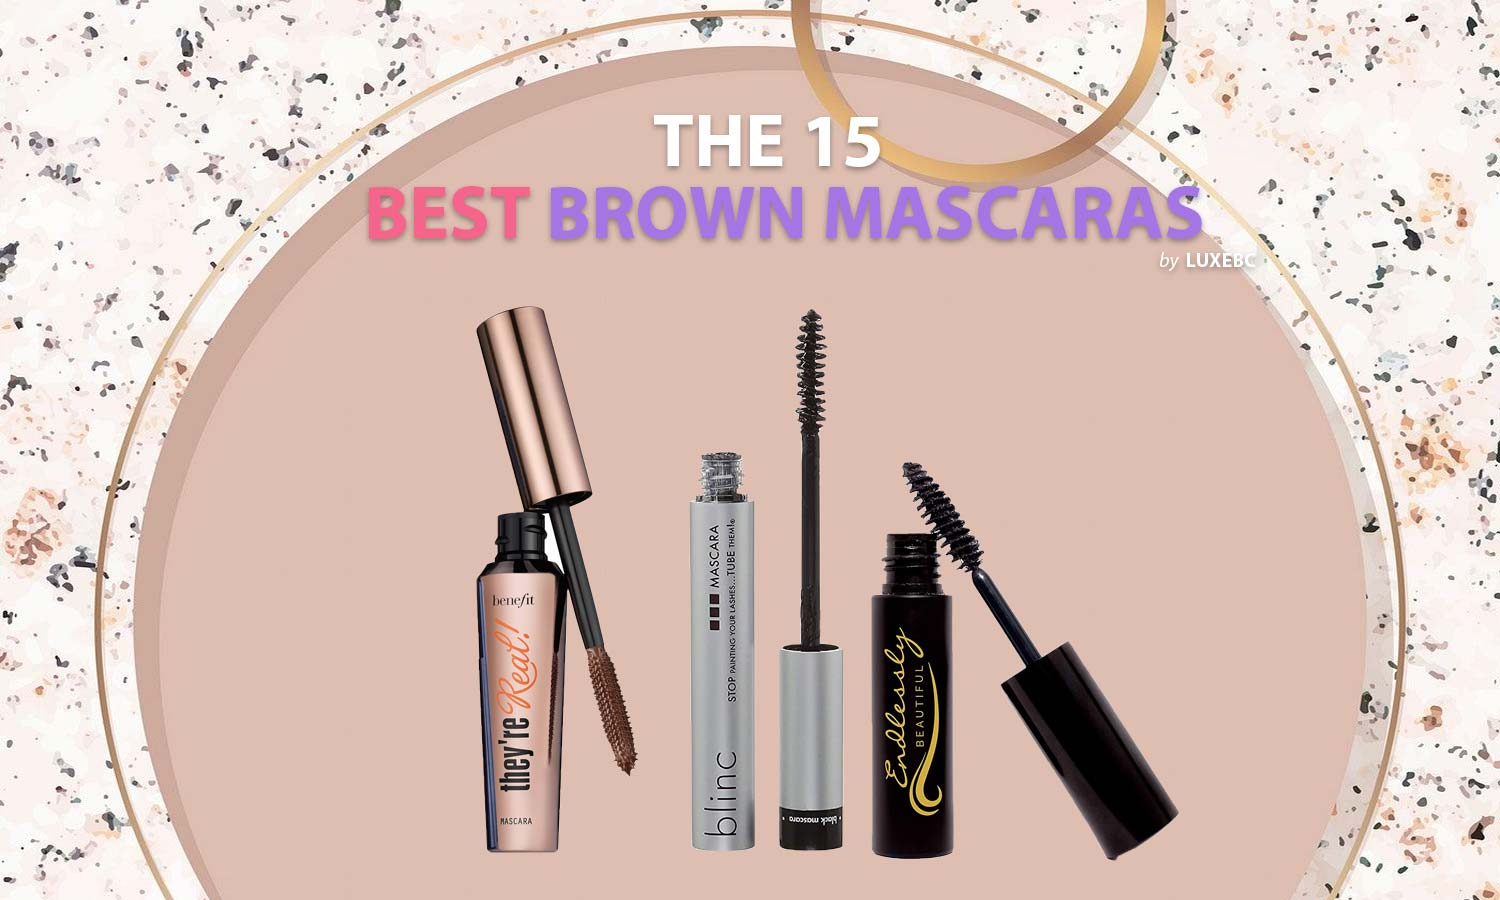 Best brown mascaras